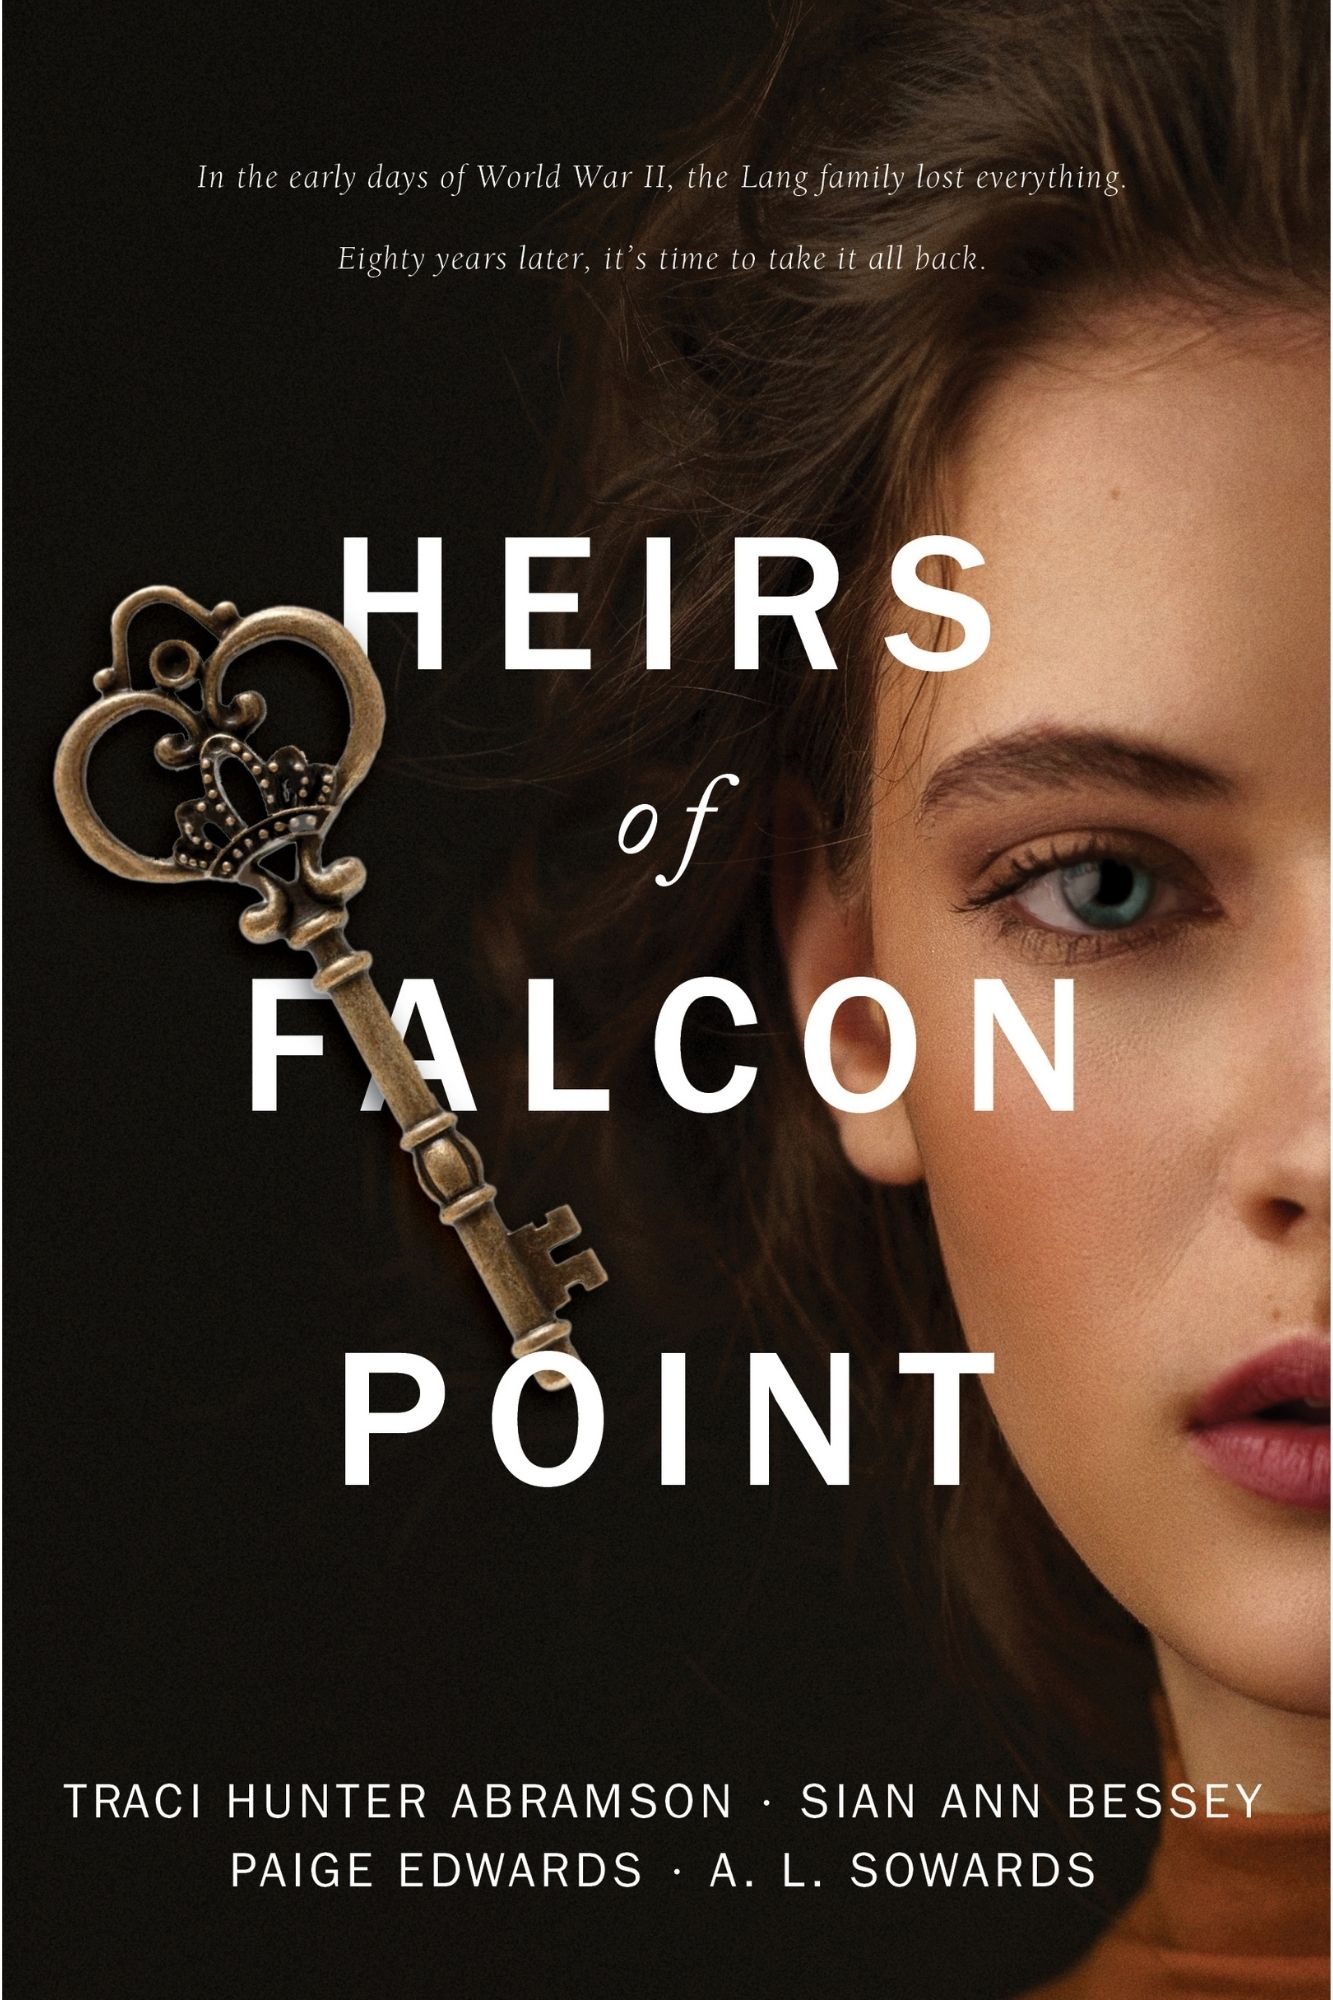 heirs-of-falcon-point-web-1